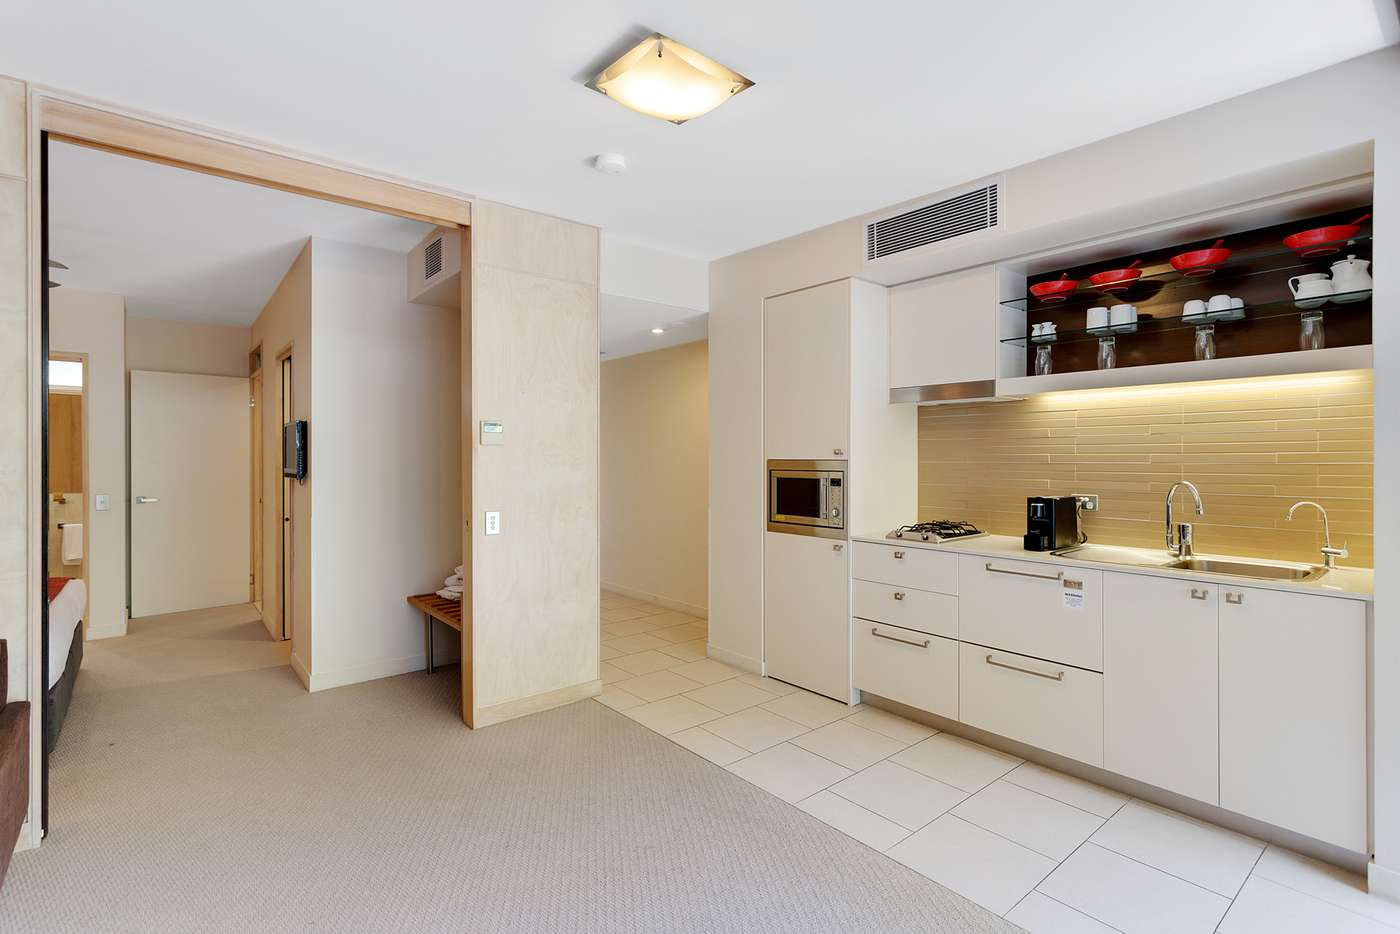 Sixth view of Homely unit listing, 9416/5 Morwong Drive, Noosa Heads QLD 4567